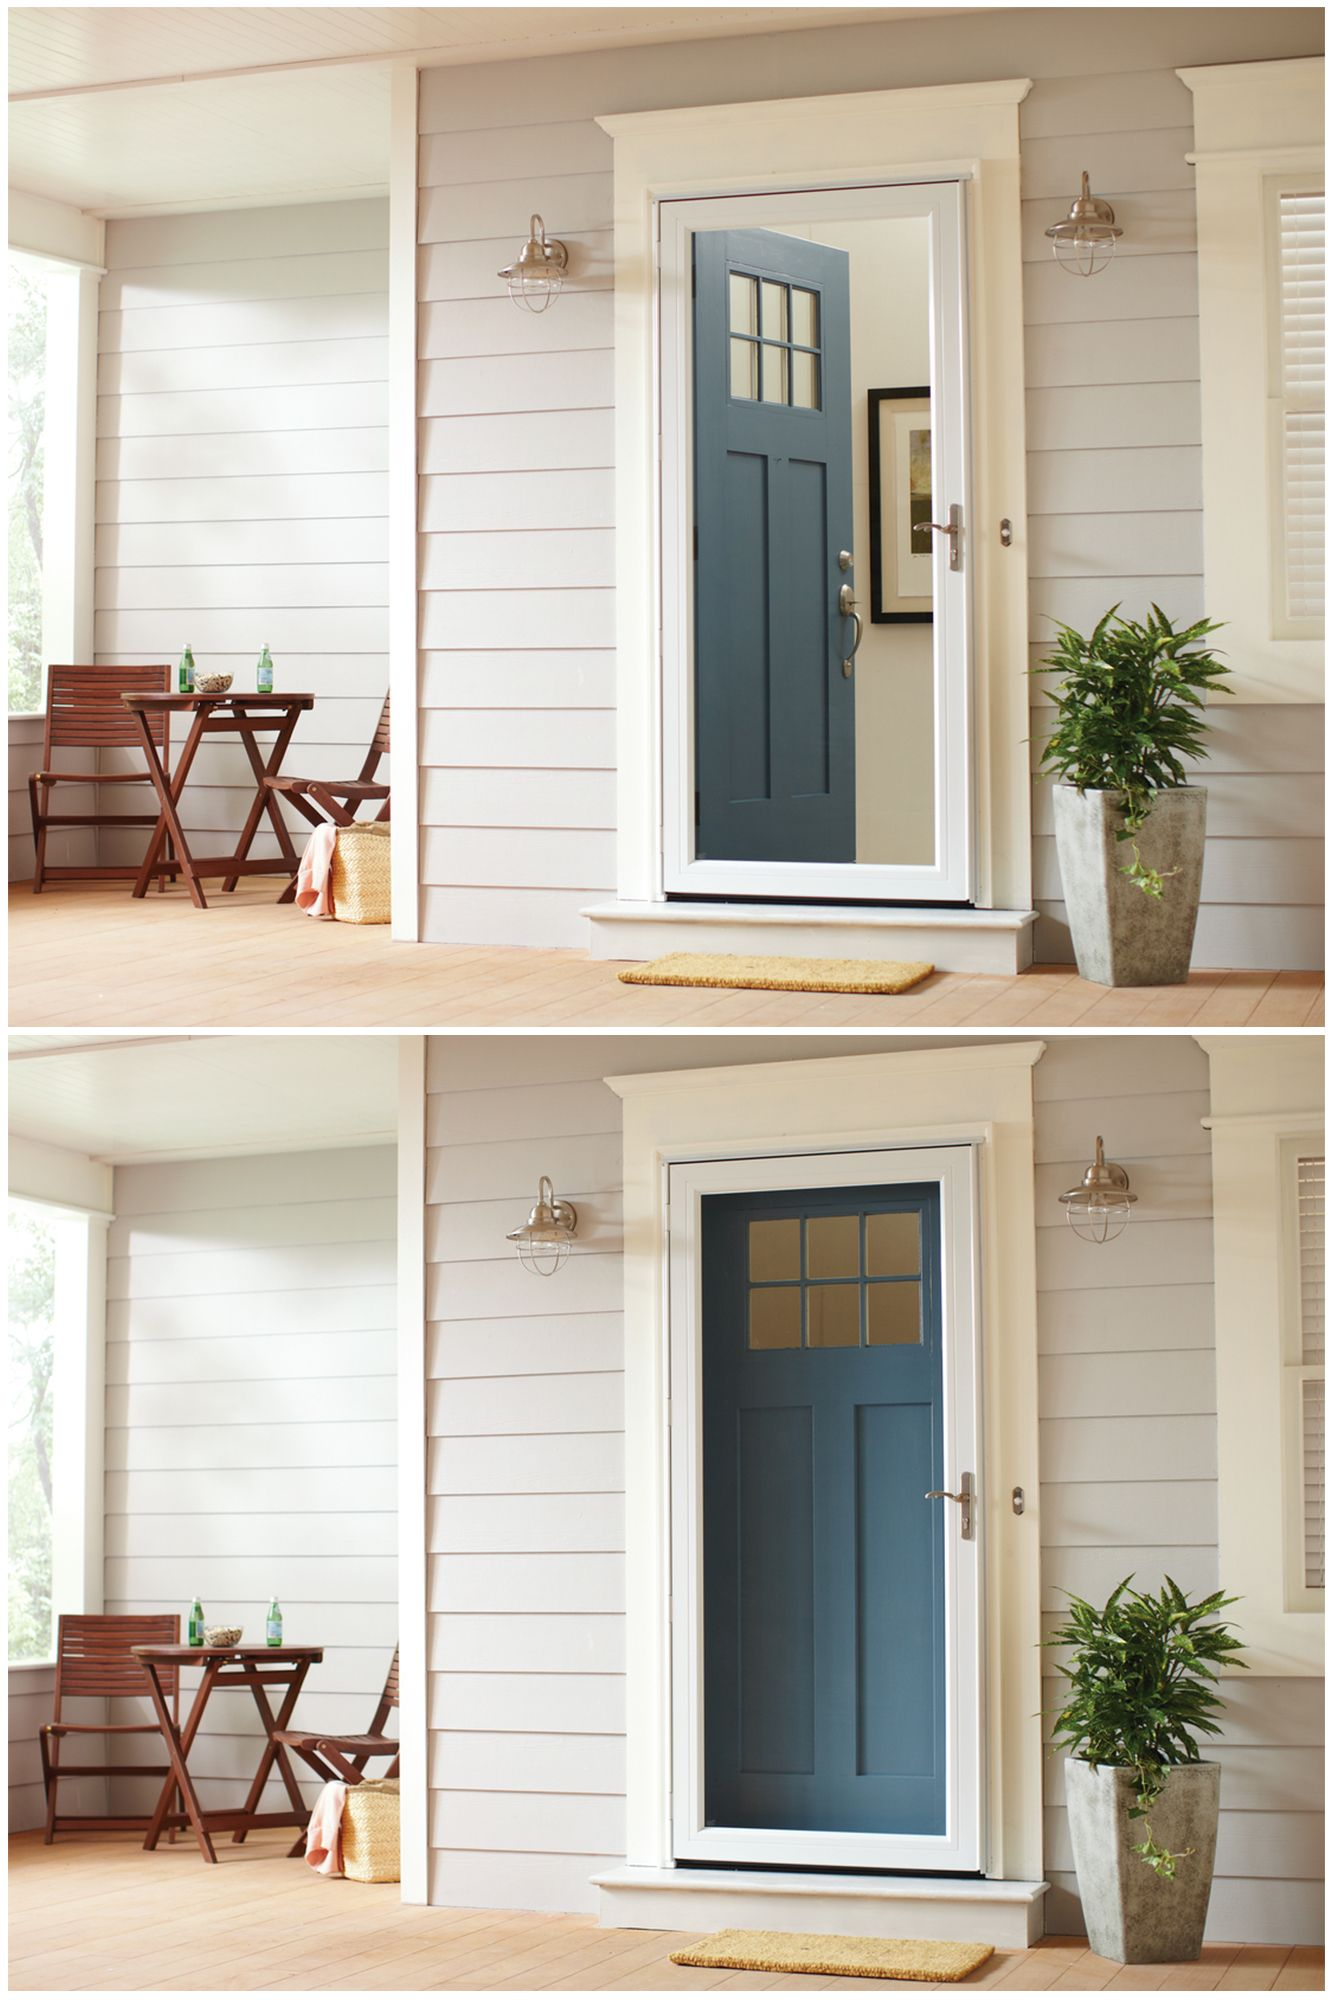 home depot front screen doorsAndersen easyinstall storm doors are prepped for quick